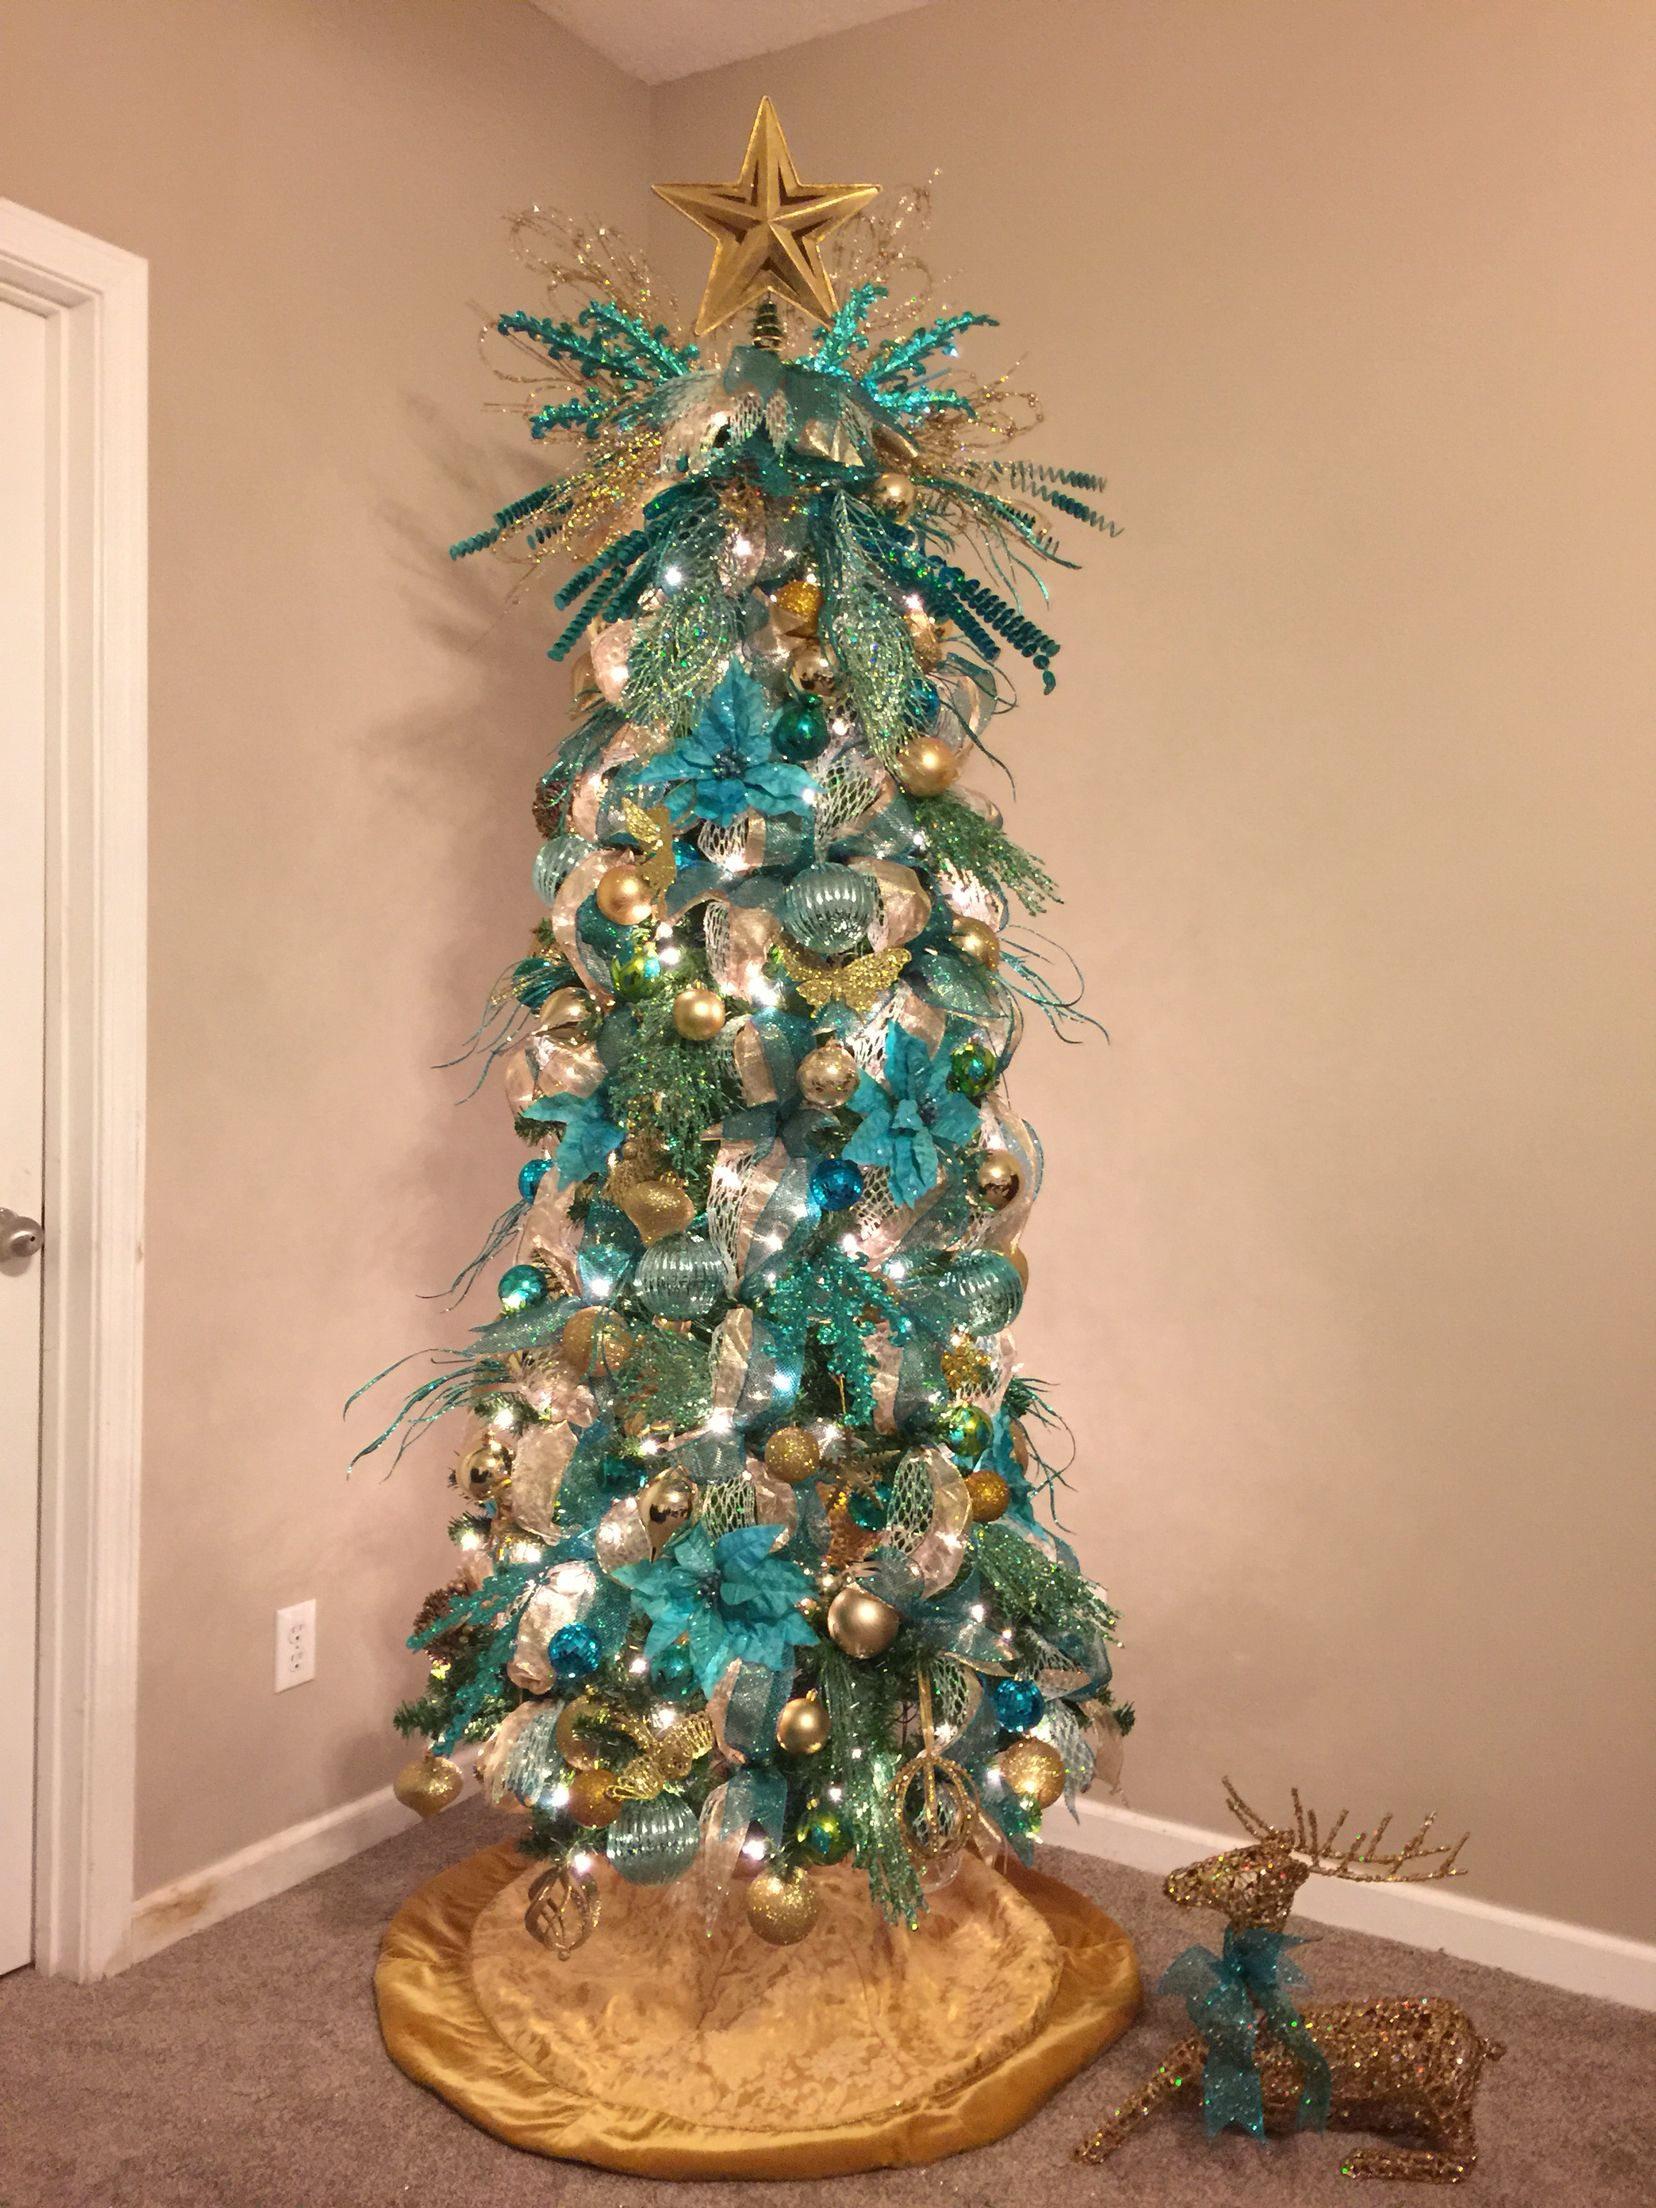 Teal And Gold Christmas Tree In My Bedroom Gold Christmas Tree Decorations Gold Christmas Tree Silver Christmas Decorations